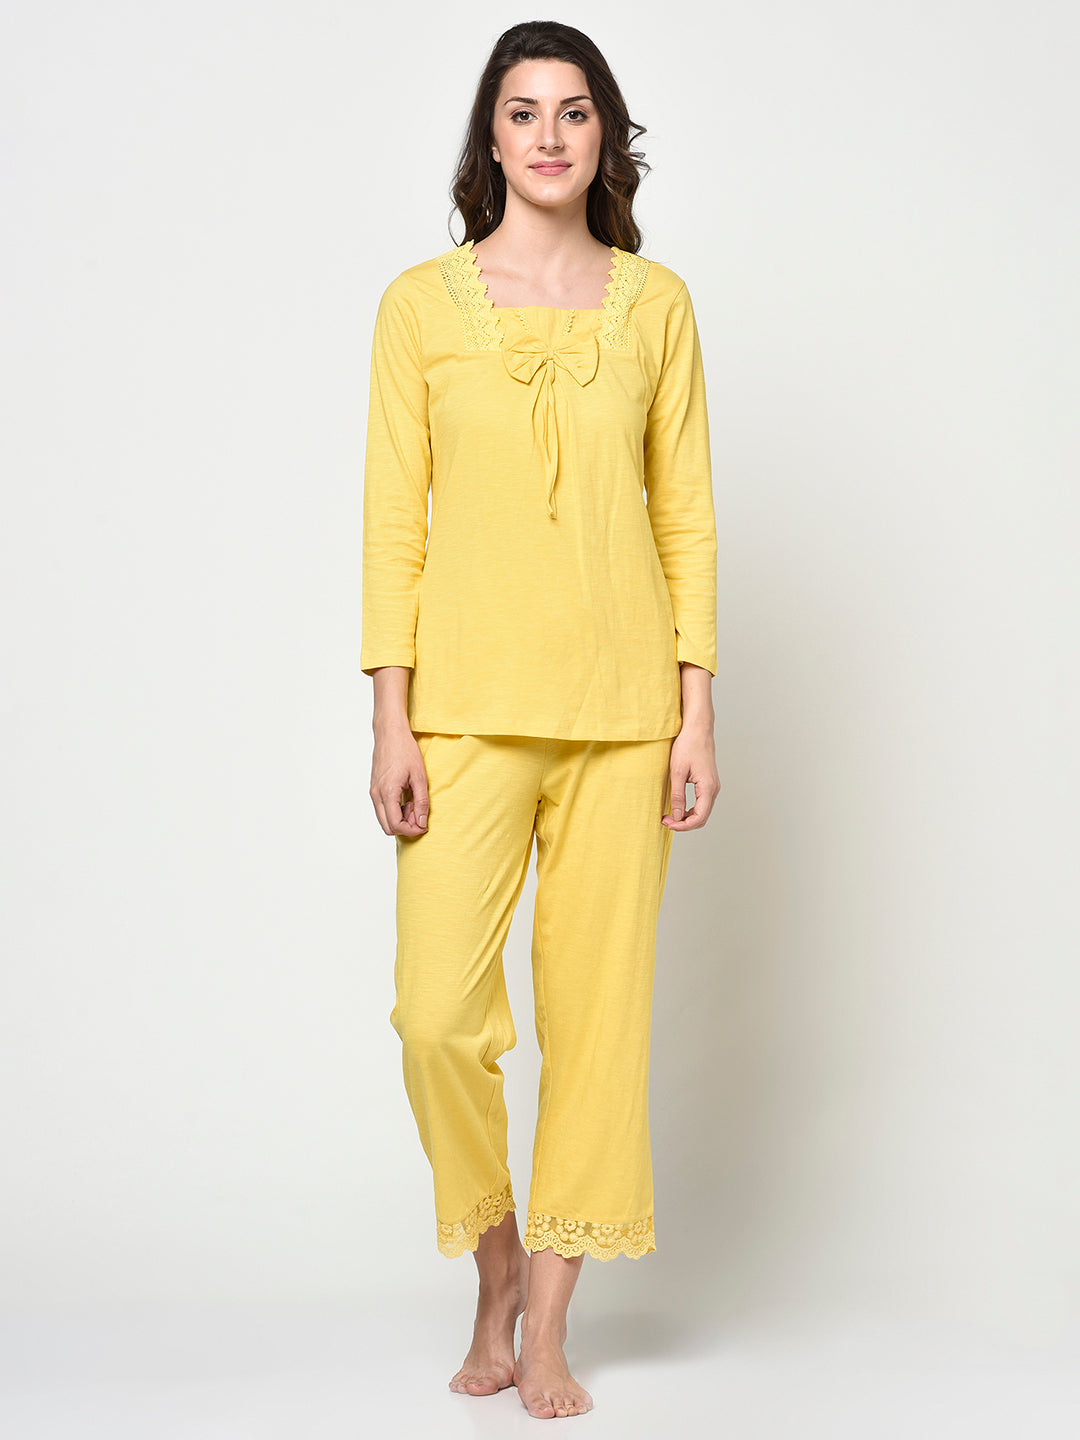 Bow Neck Design Yellow Ladies 2 Pcs Night Suit - Avsoy